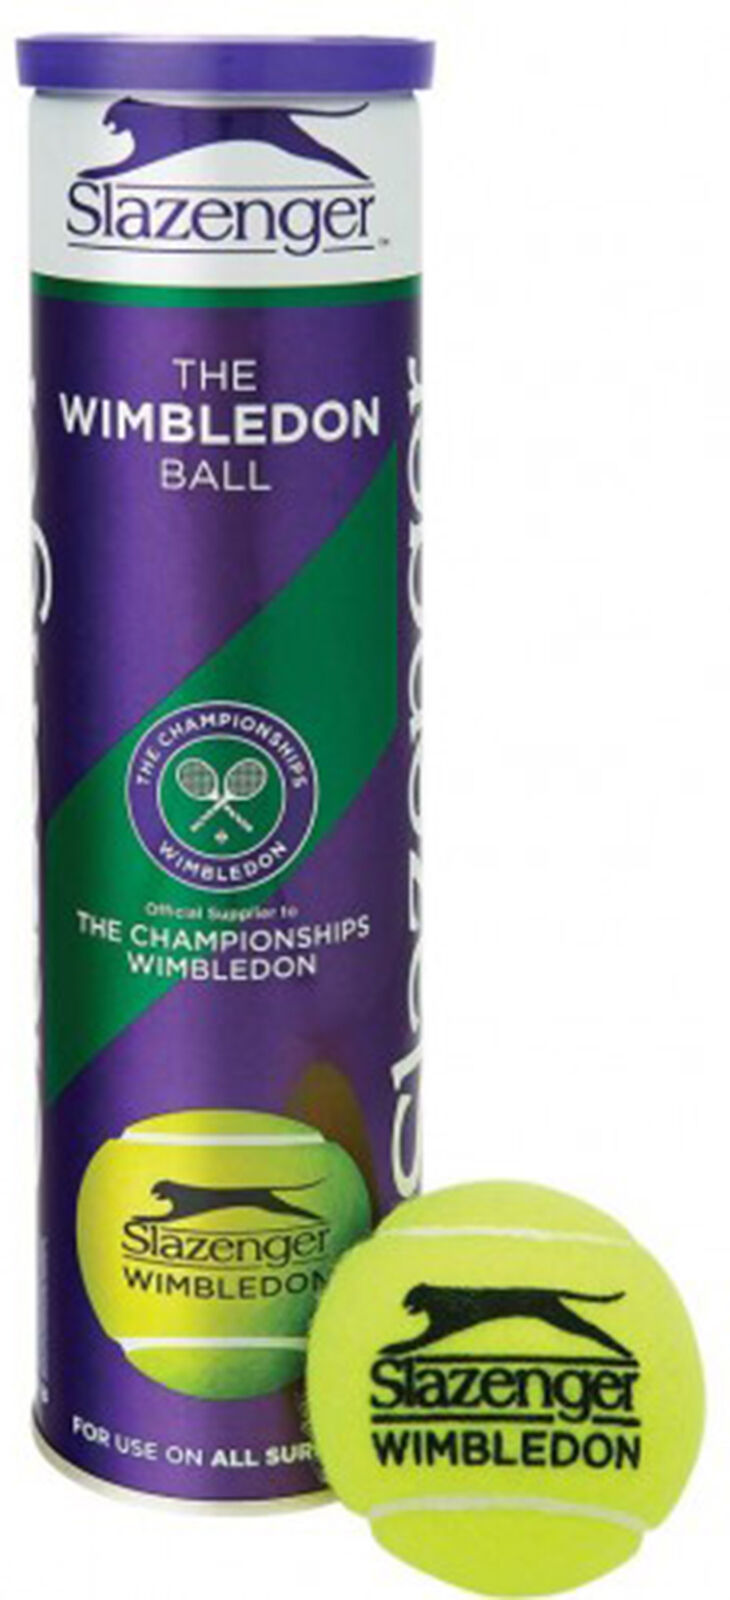 Slazenger Wimbledon Tennis Sports Match Quality Ball Ultravis 3X4 Ball Tin